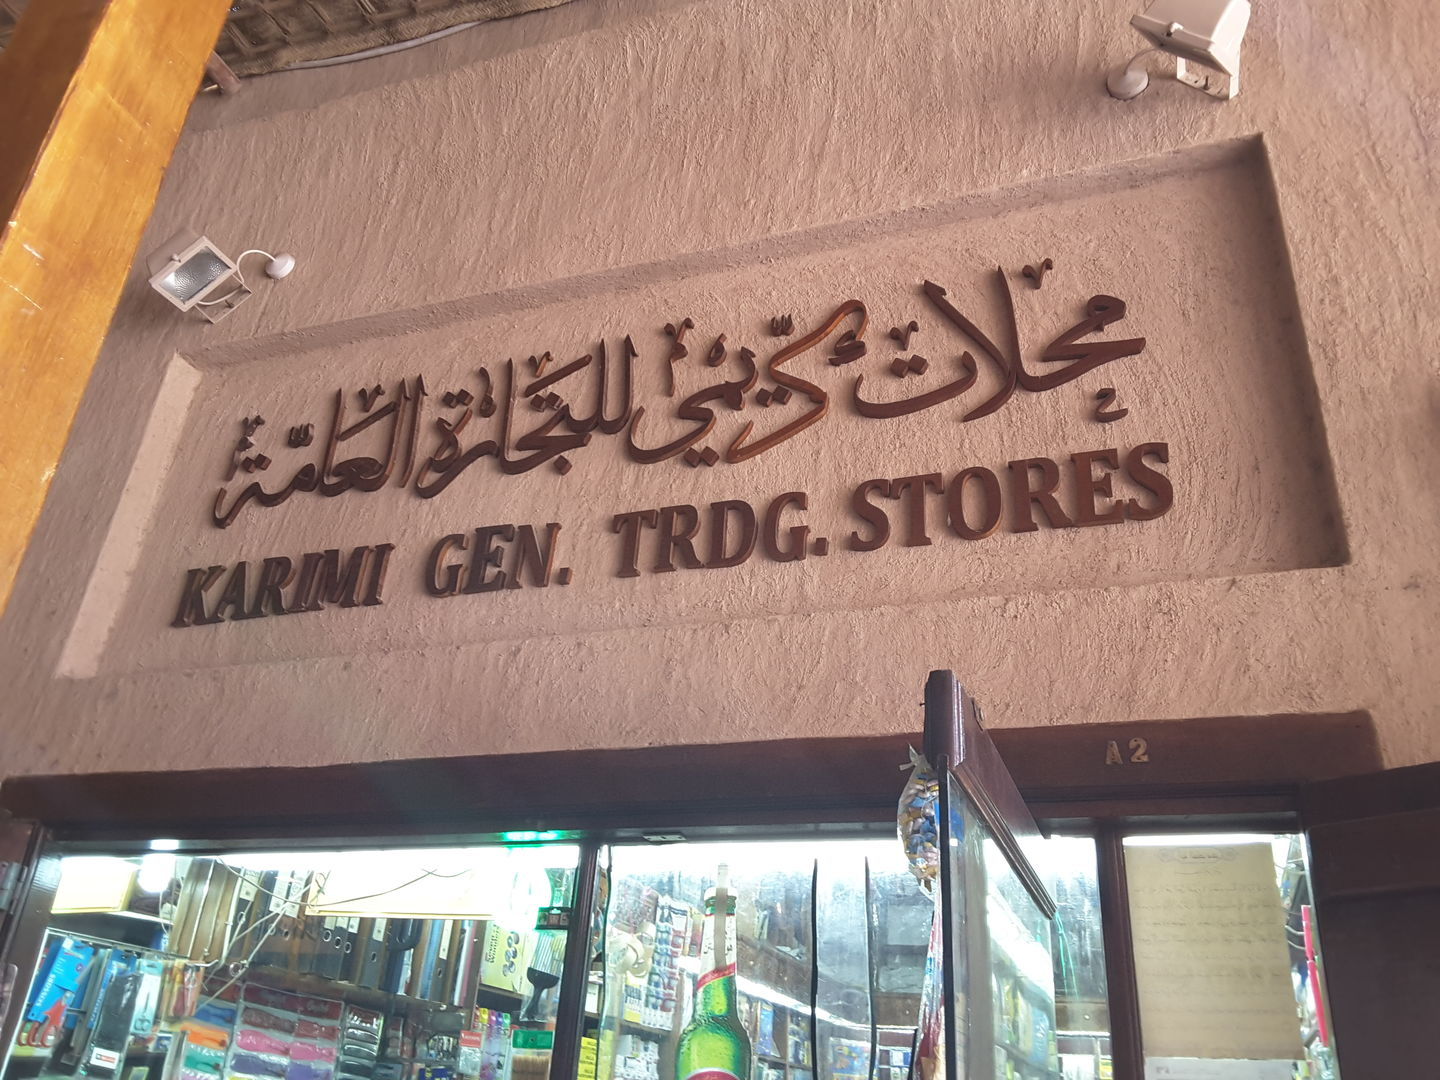 HiDubai-business-karimi-general-trading-stores-b2b-services-distributors-wholesalers-al-ras-dubai-4